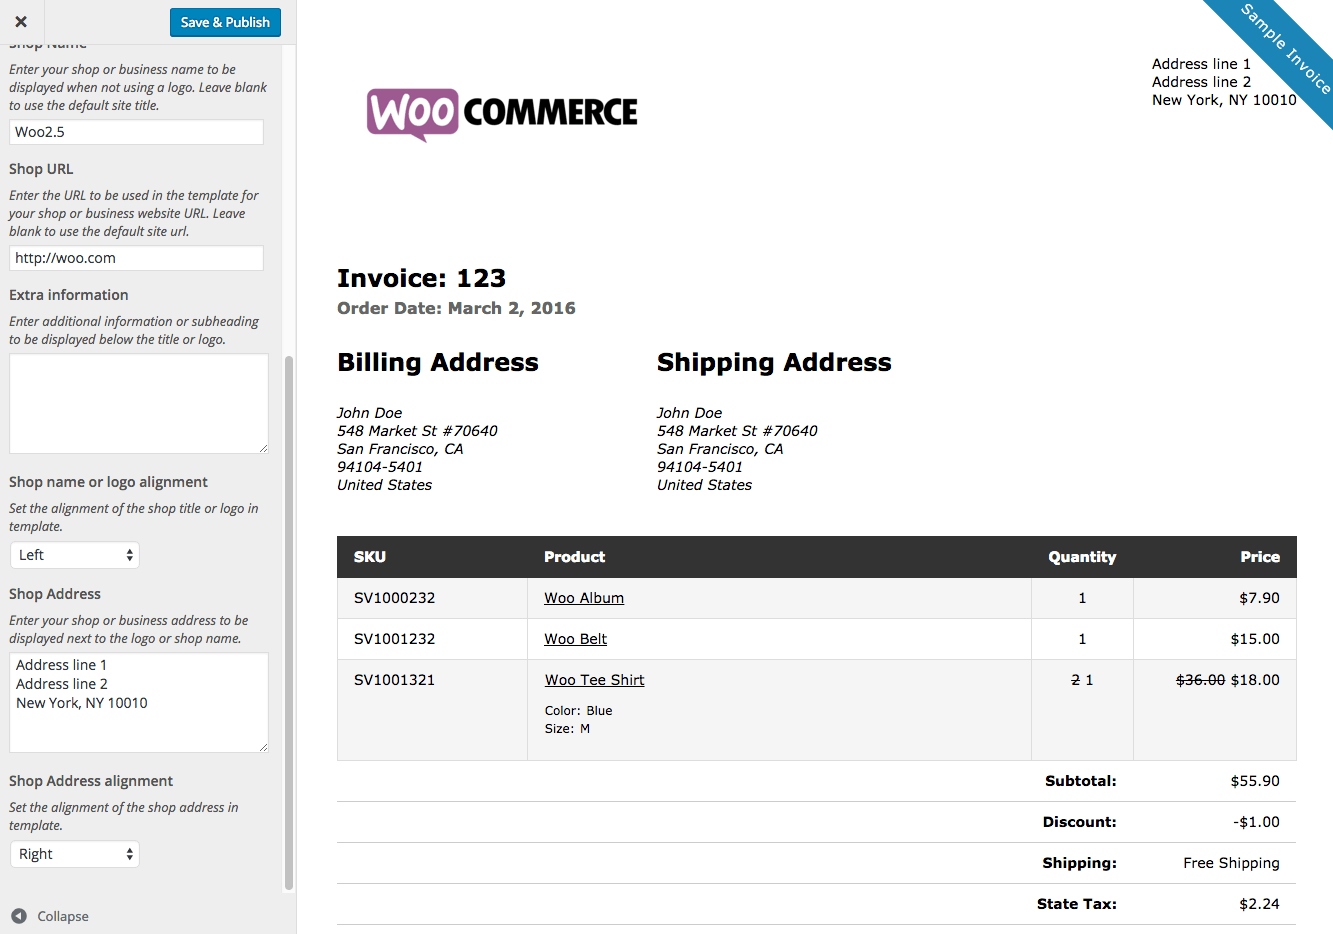 Howcanigettallerus  Nice Woocommerce Print Invoices Amp Packing Lists  Woocommerce Docs With Inspiring Woocommerce Print Invoices  Packing Lists Customizer With Captivating How To Make A Receipt On Word Also Down Payment Receipt In Addition Usps Tracking   Customer Receipt And Receipt Log Template As Well As Blank Taxi Receipts Additionally Tourism Receipts From Docswoocommercecom With Howcanigettallerus  Inspiring Woocommerce Print Invoices Amp Packing Lists  Woocommerce Docs With Captivating Woocommerce Print Invoices  Packing Lists Customizer And Nice How To Make A Receipt On Word Also Down Payment Receipt In Addition Usps Tracking   Customer Receipt From Docswoocommercecom